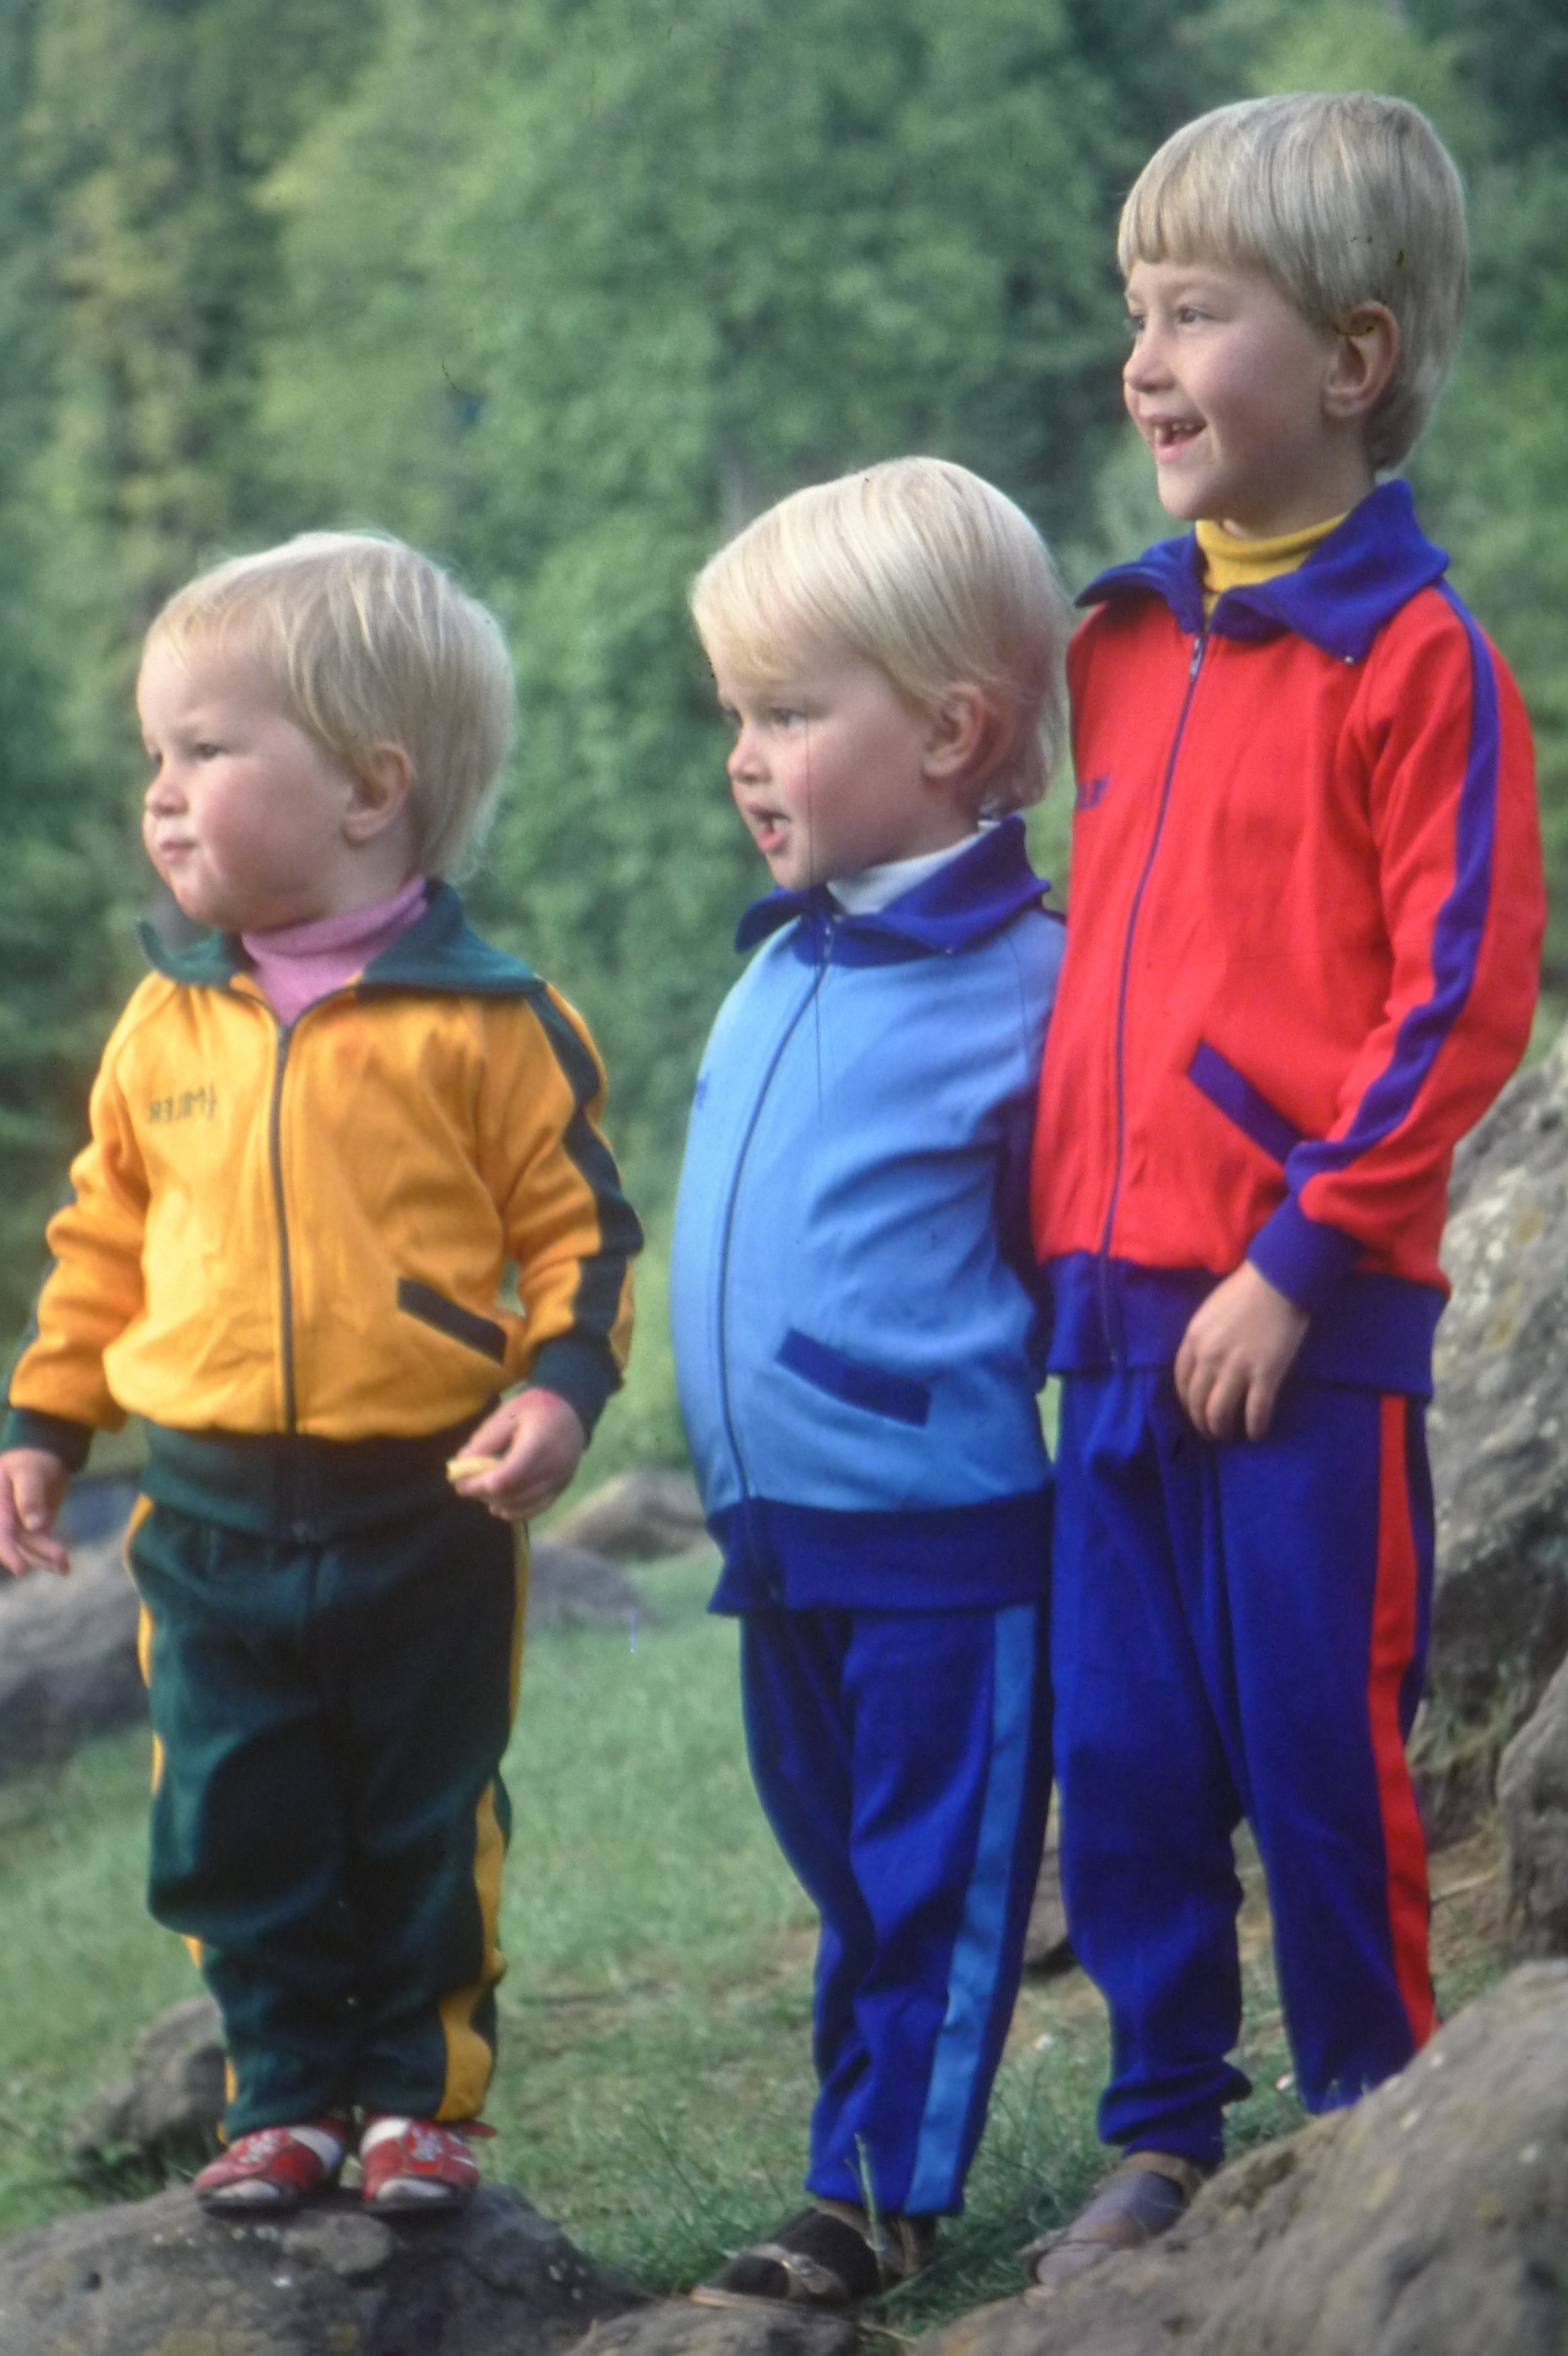 I'm the one in the middle, rocking the blue tracksuit. Obviously, my parents had higher sporting ambitions for us, dressing us like this. Or maybe not. It was the seventies, after all.